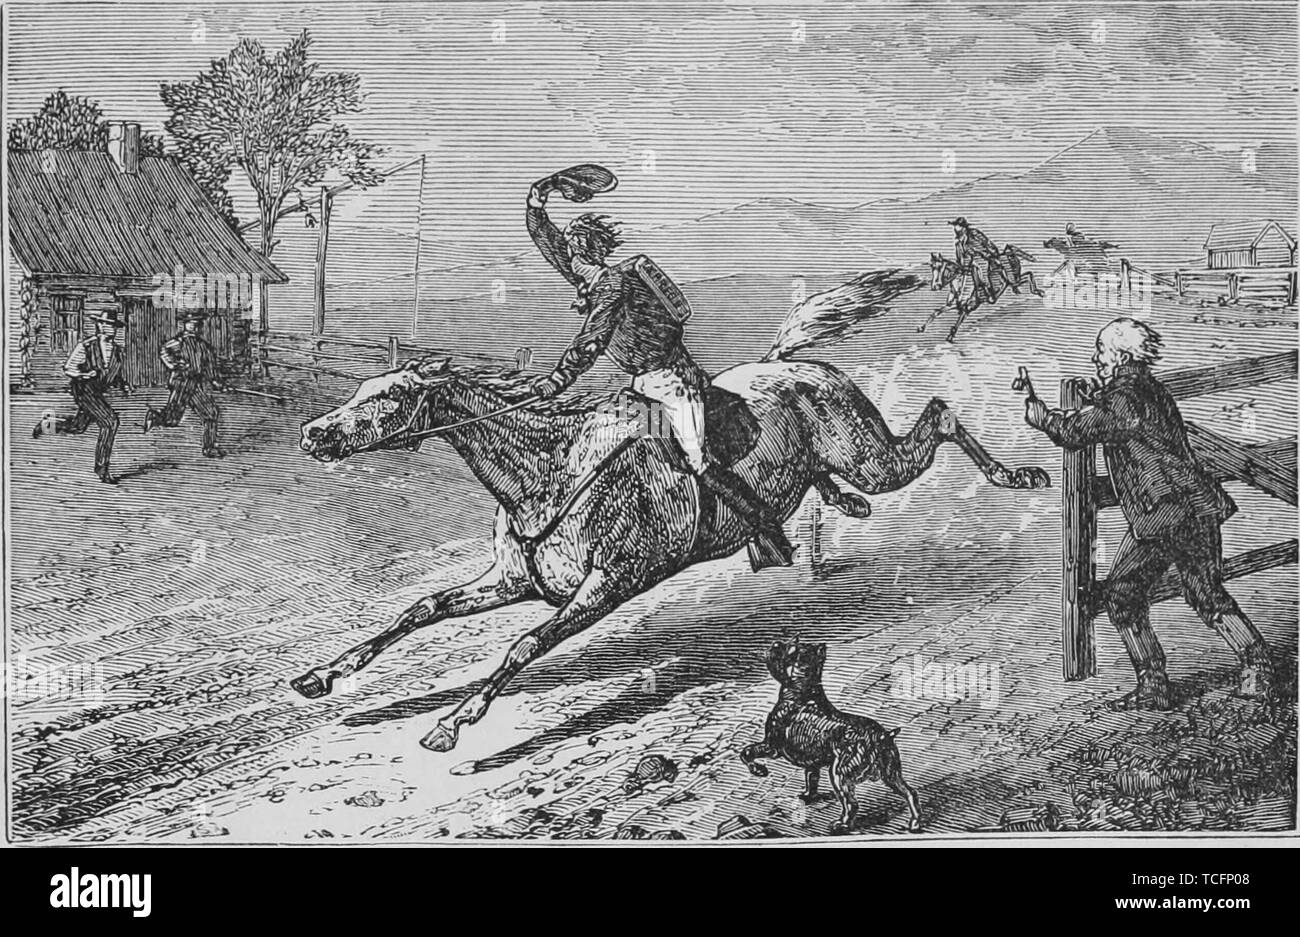 Engraving of the Overland Pony Express pursued by Highwaymen, from the book 'The Pacific tourist' by Henry T. Williams, 1878. Courtesy Internet Archive. () - Stock Image